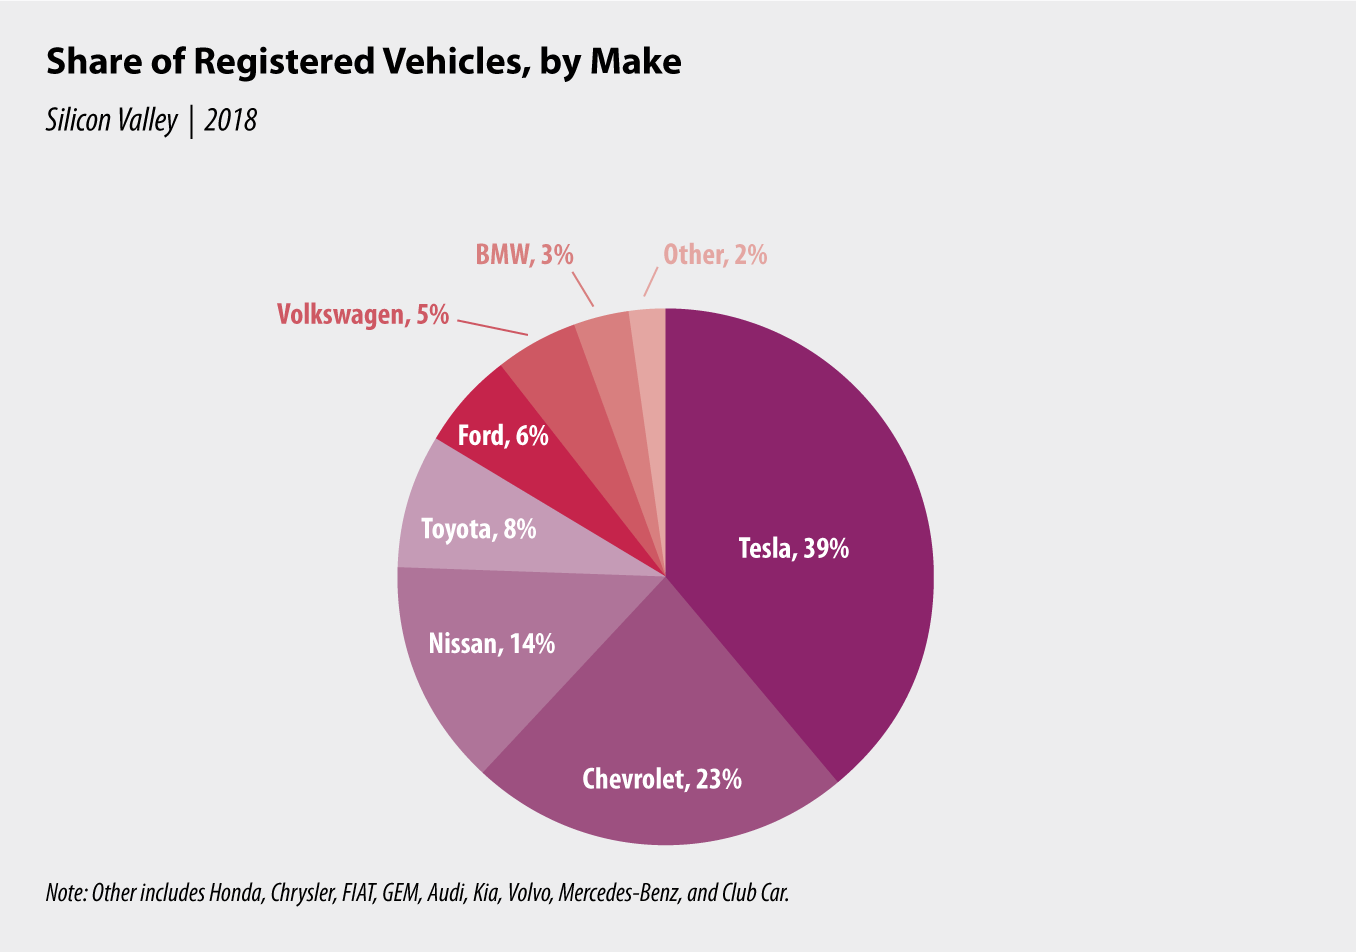 Chart 3: Share of Registered Vehicles, by Make